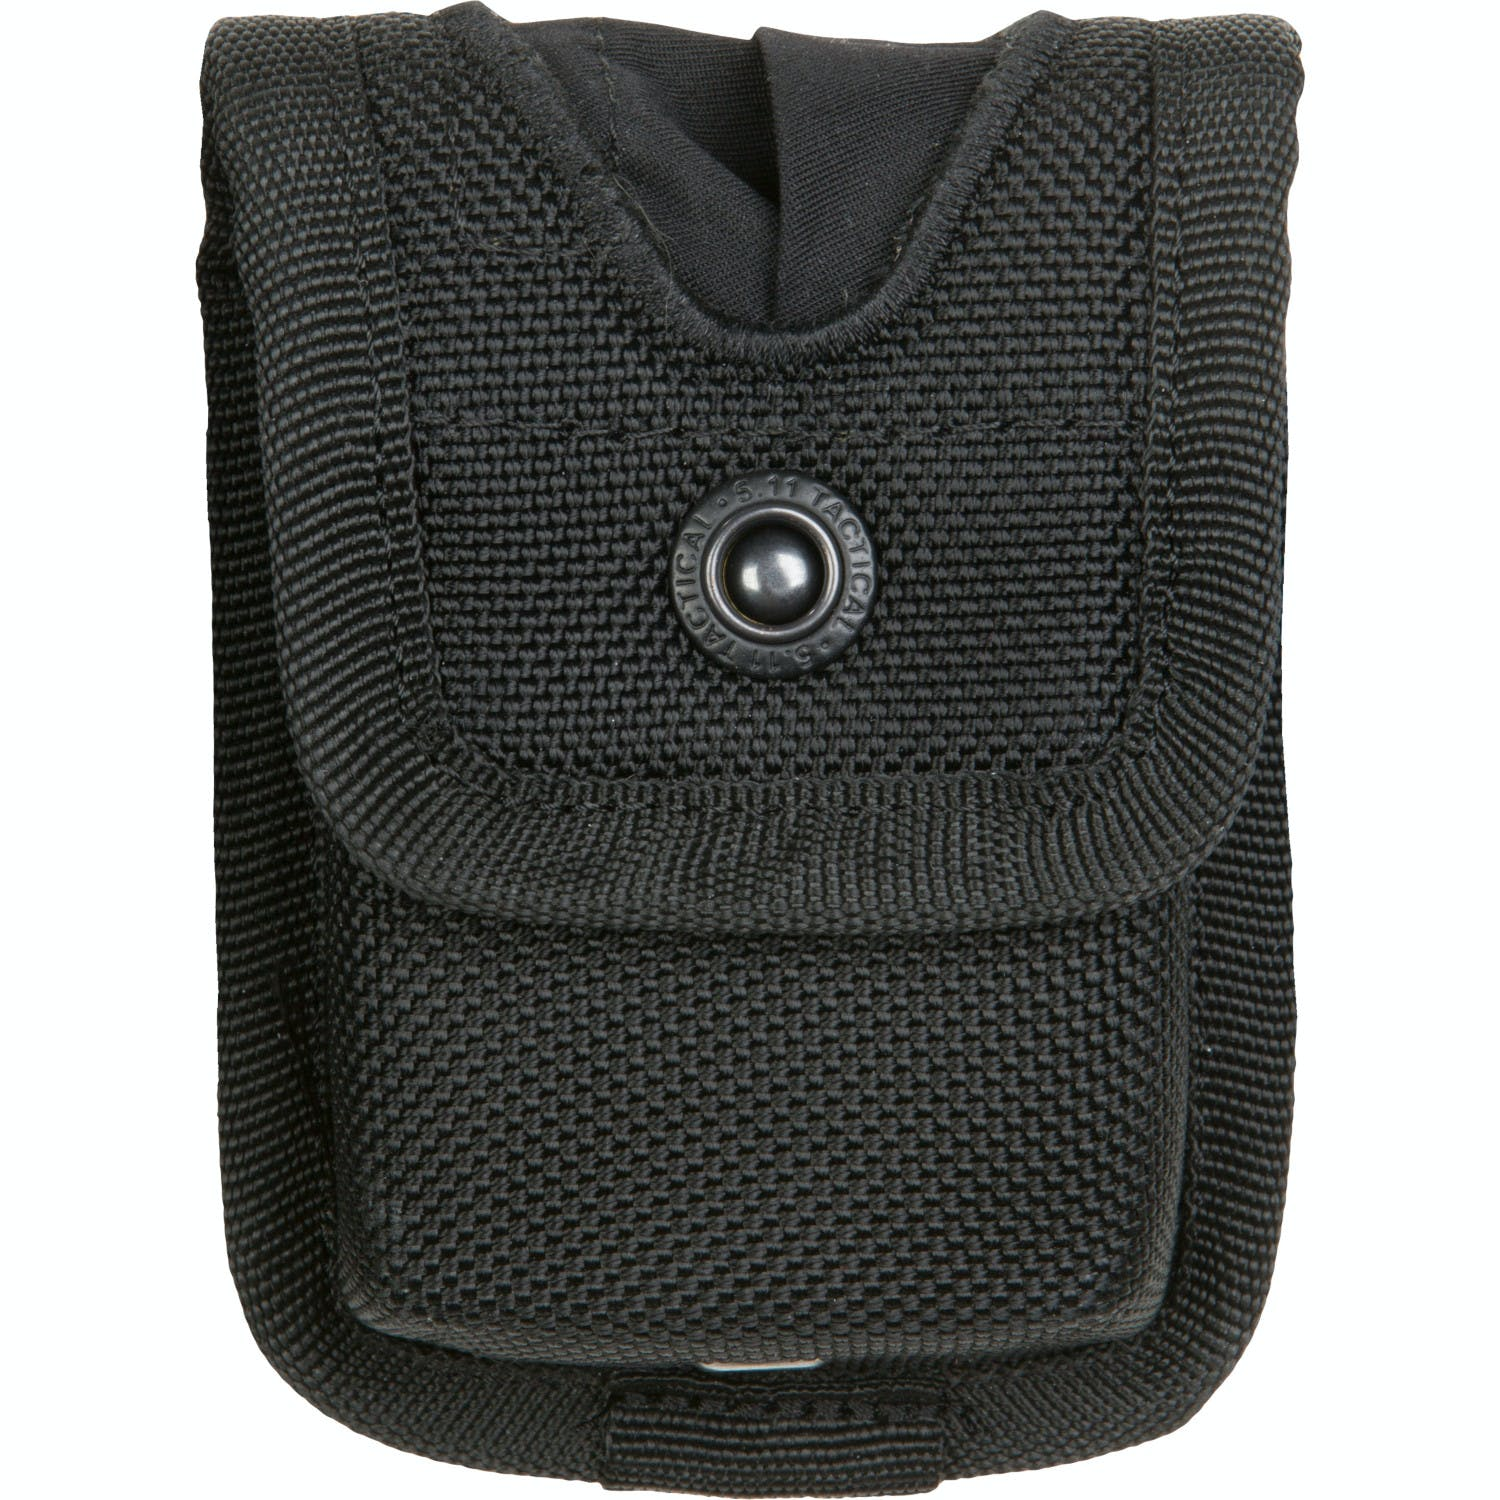 5 11 Tactical Sierra Bravo Latex Glove Holder Pouch From